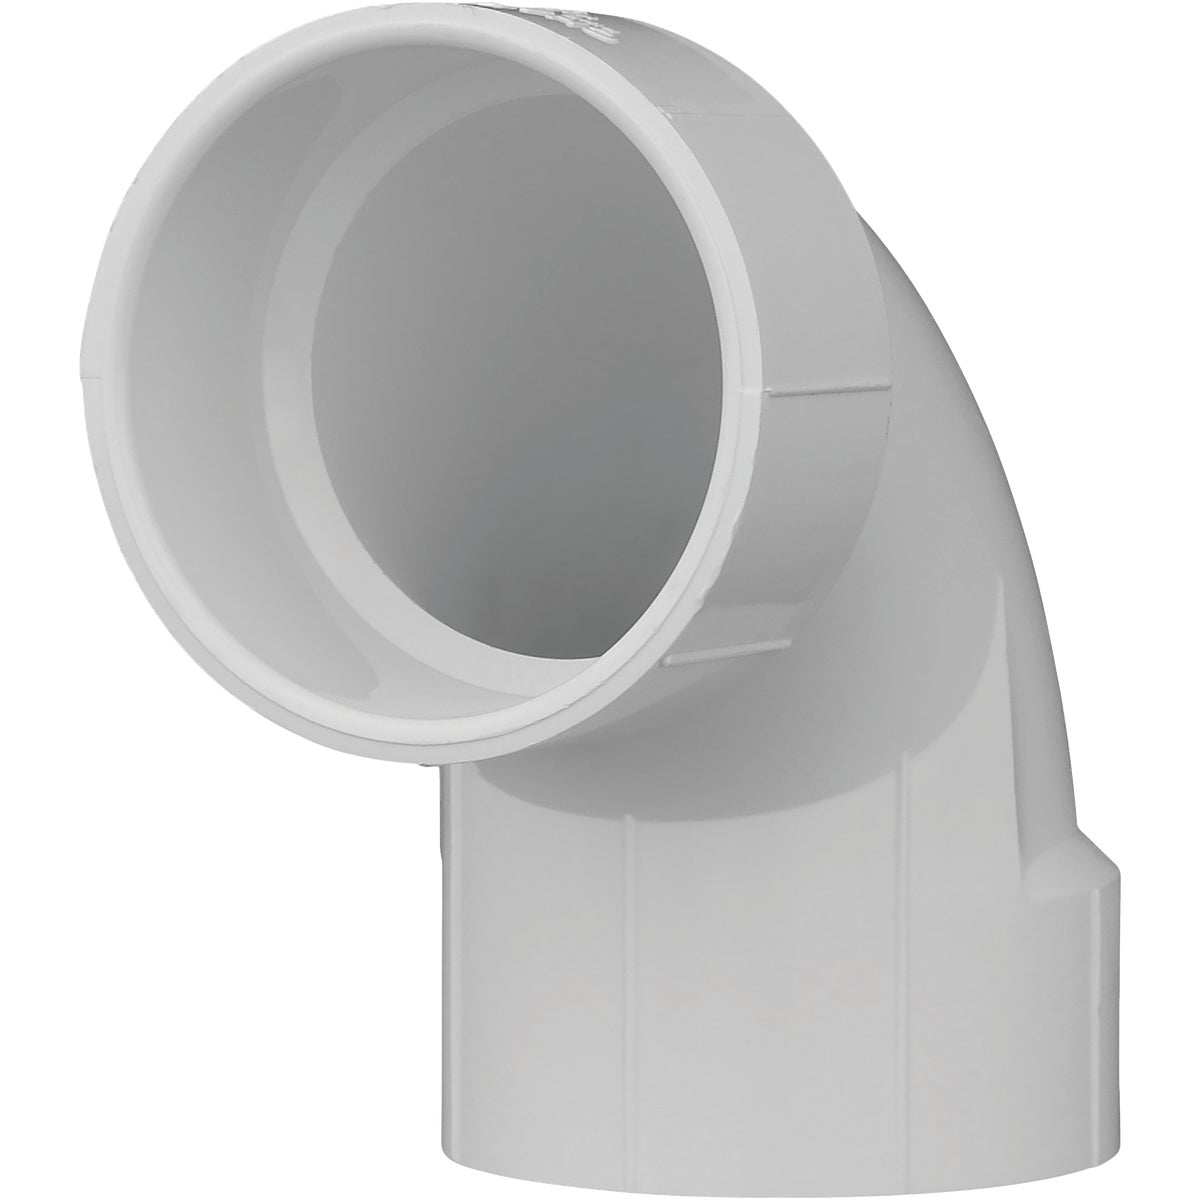 "3"" 90D DWV SANITRY ELBOW - 72830 by Genova Inc  Pvc Dwv"